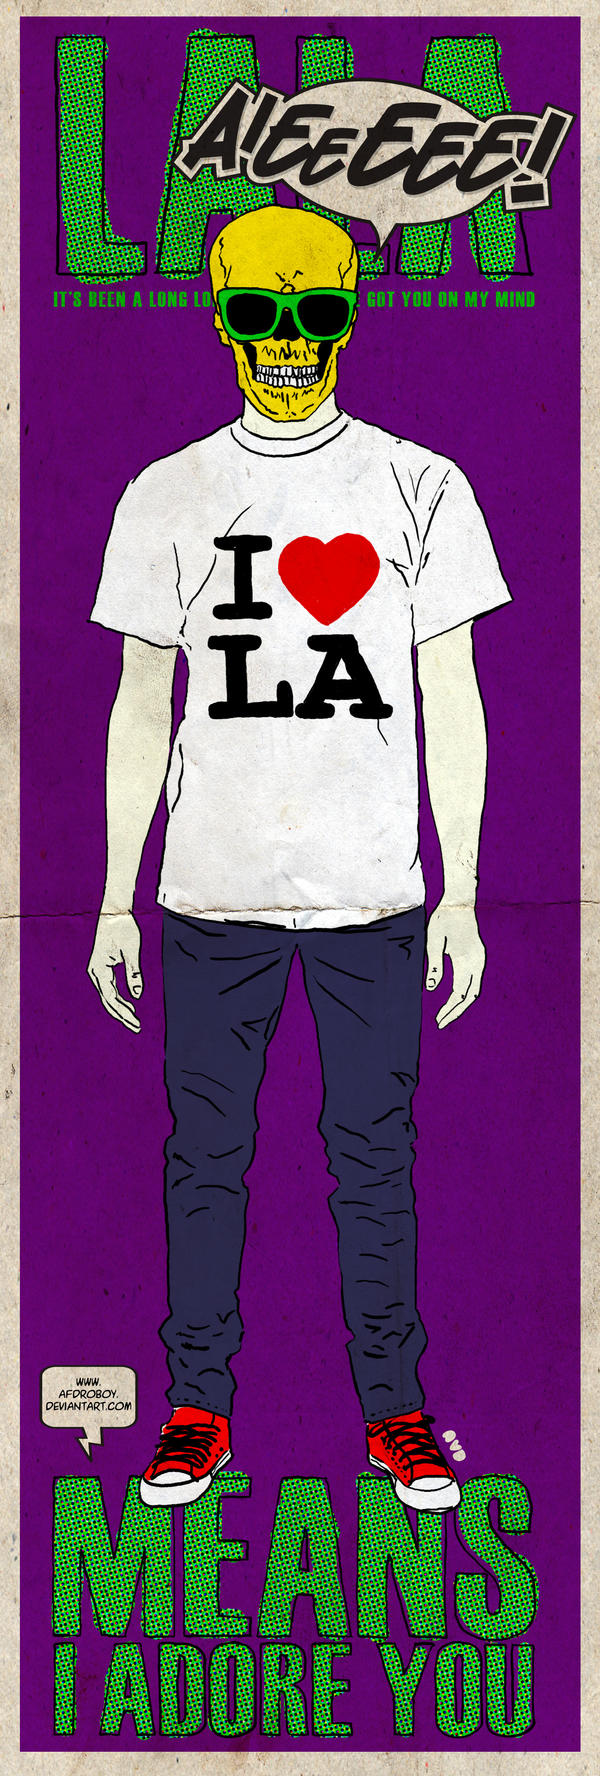 la la means i adore you by AFDROBOY